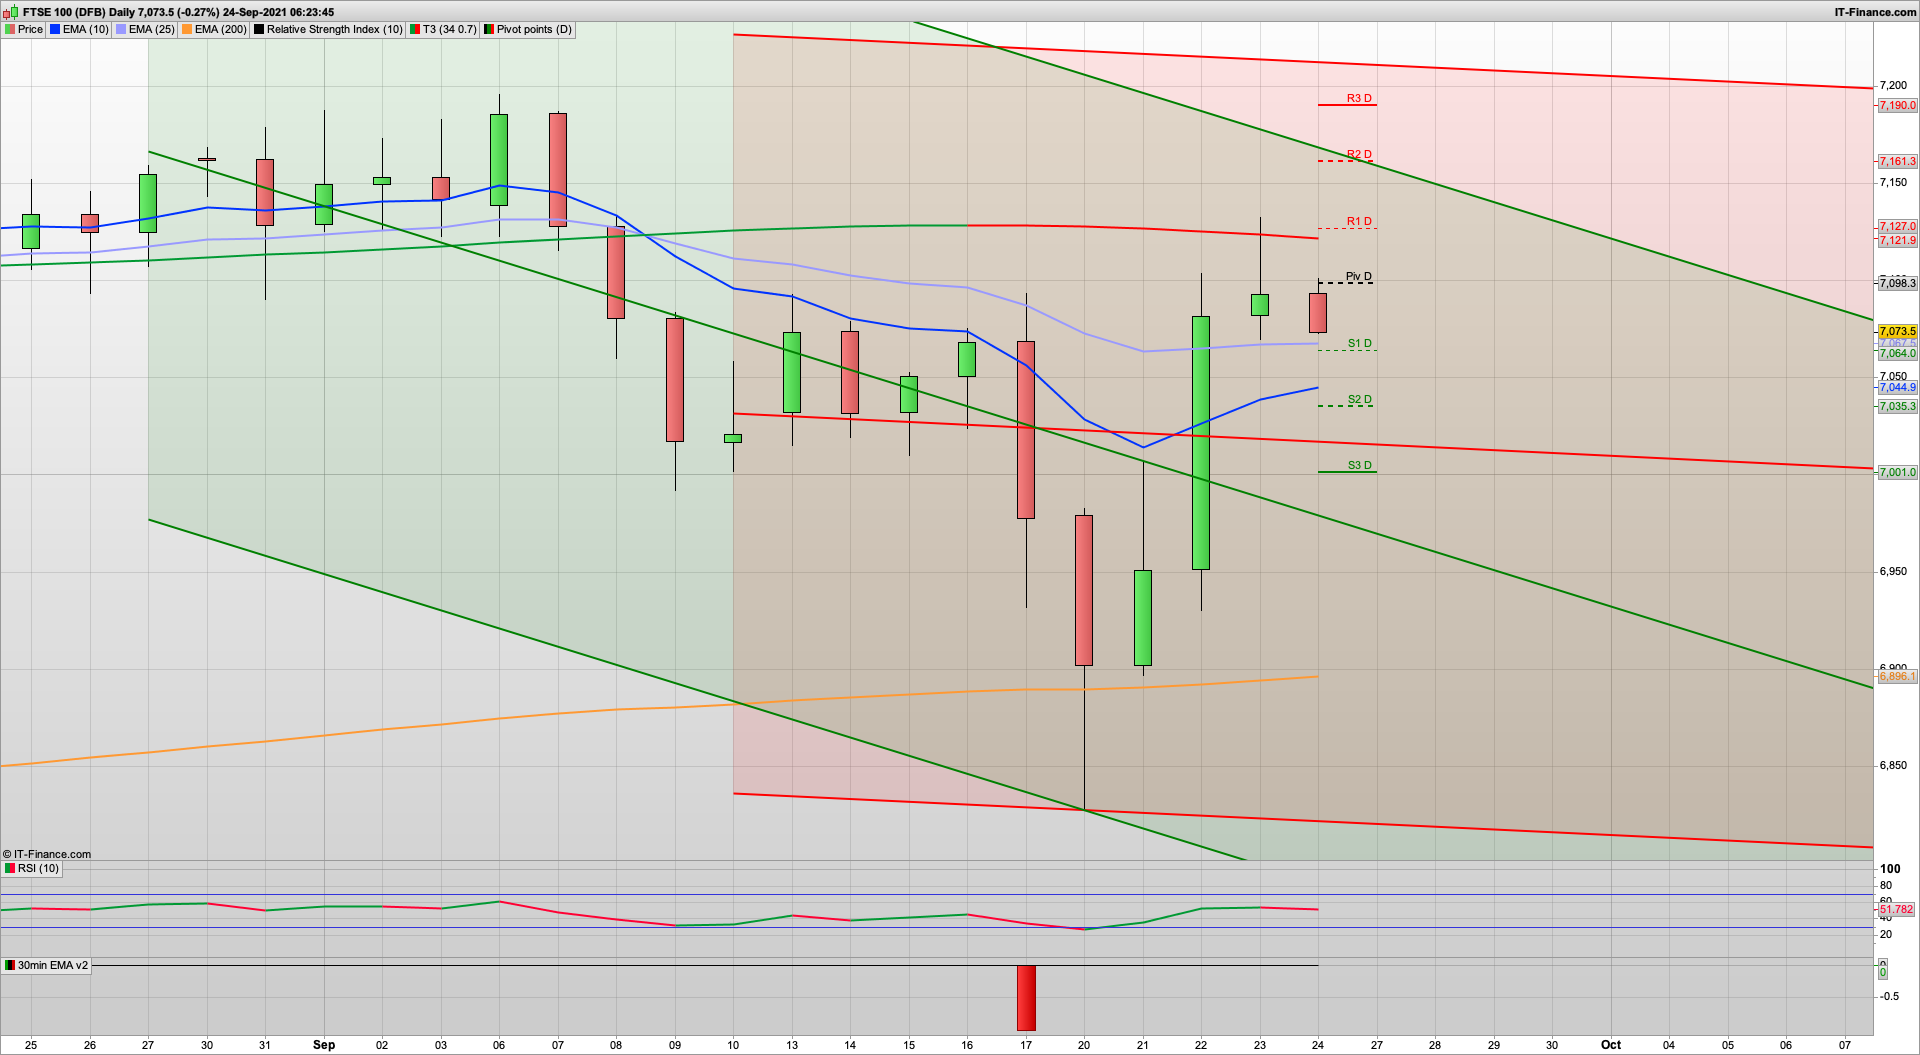 Possible dip ad rise today but S&P bears may appear | 7054 7020 7010 support | 7098 7131 7150 resistance